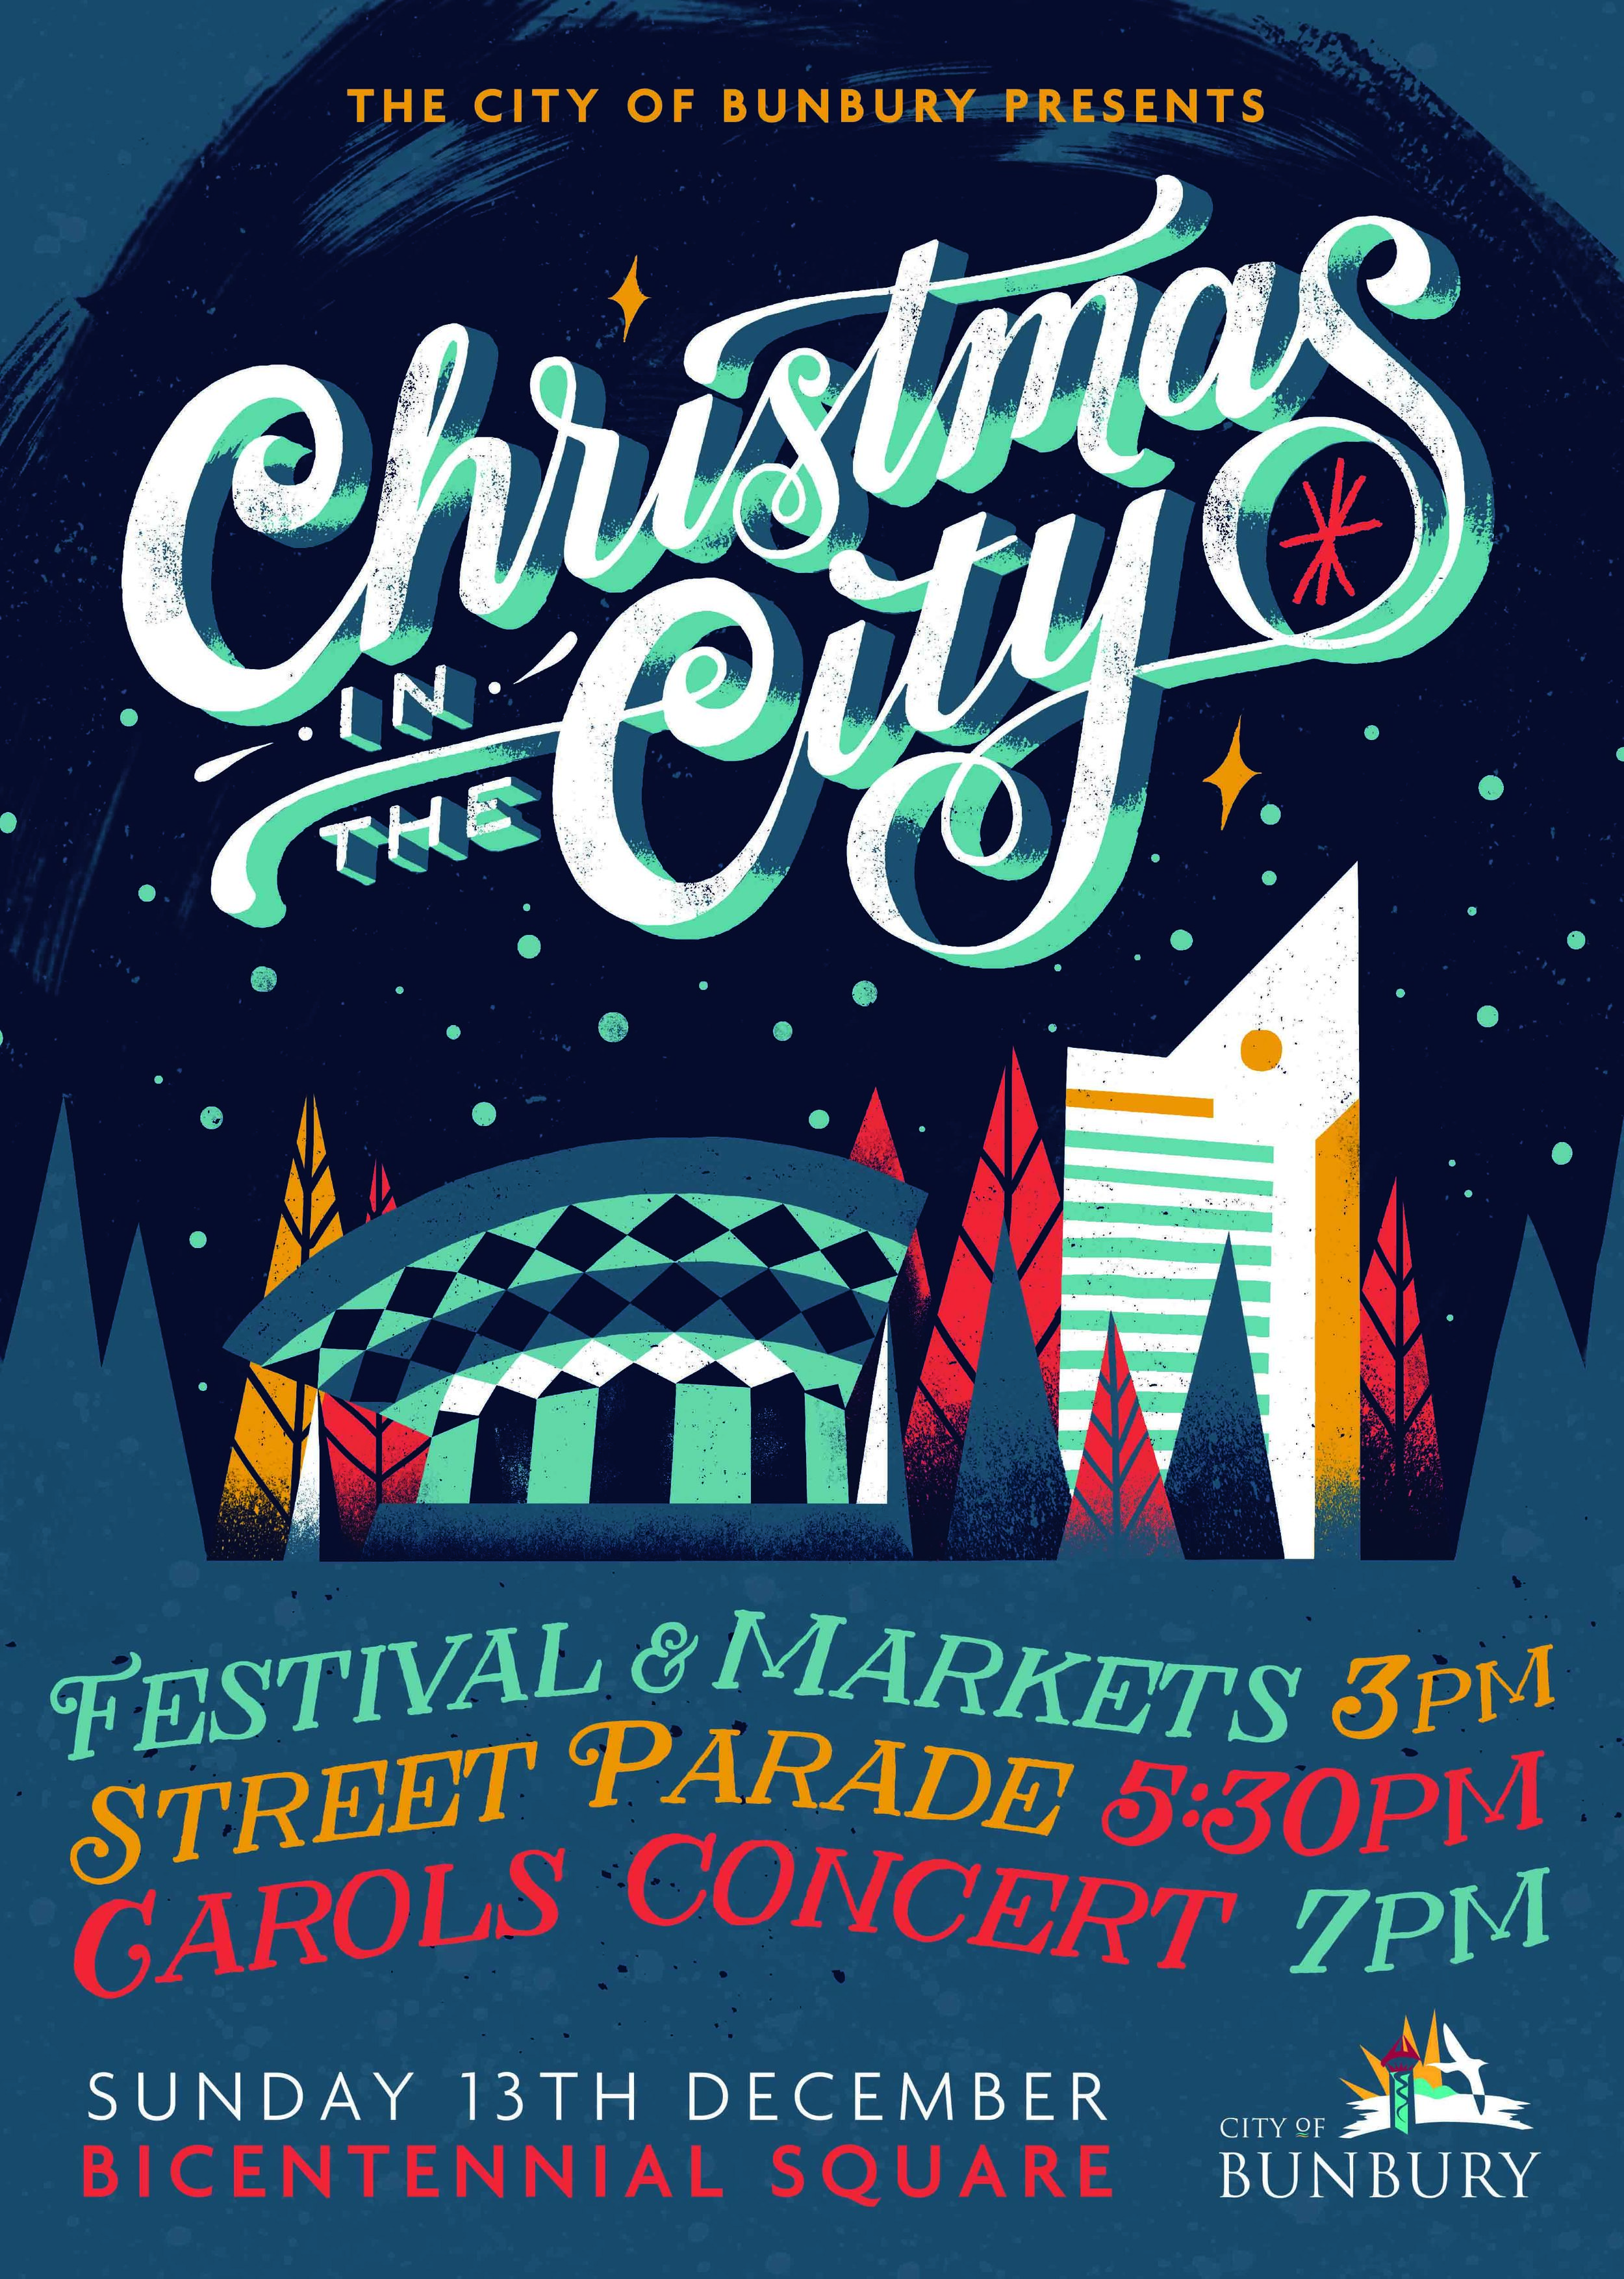 city of bunbury | christmas in the city (feat. illustration by chris nixon)